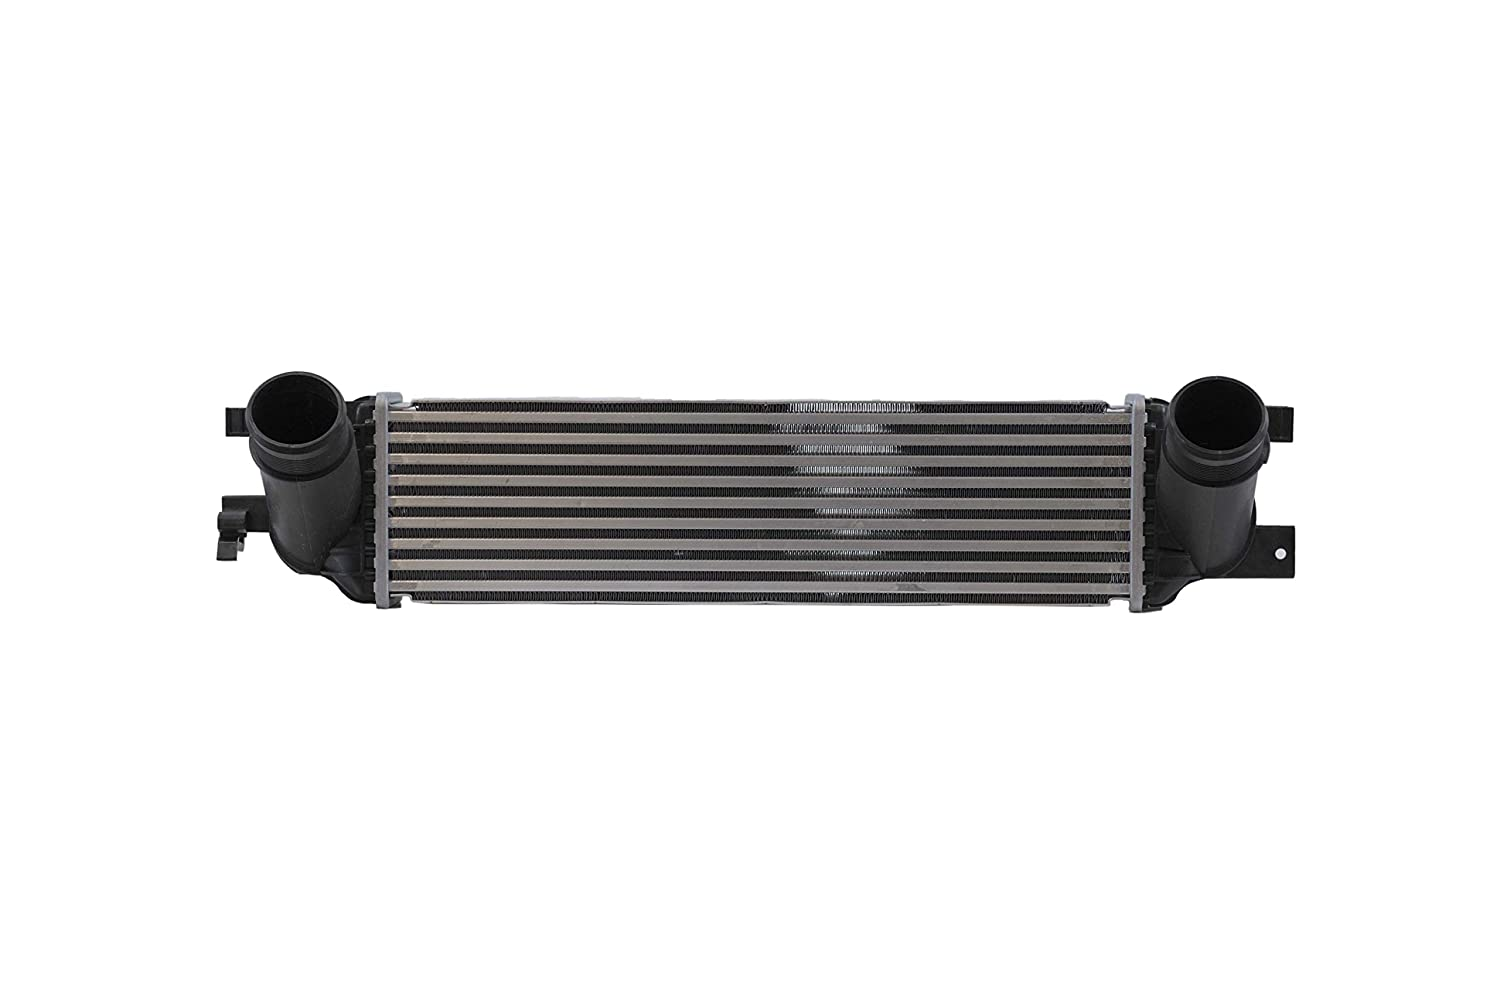 Intercooler Kit Cooling Direct Fit//For FR3Z6K775A 15-16 Ford Mustang Convertible//Coupe 2.3L Turbocharger Intercooler